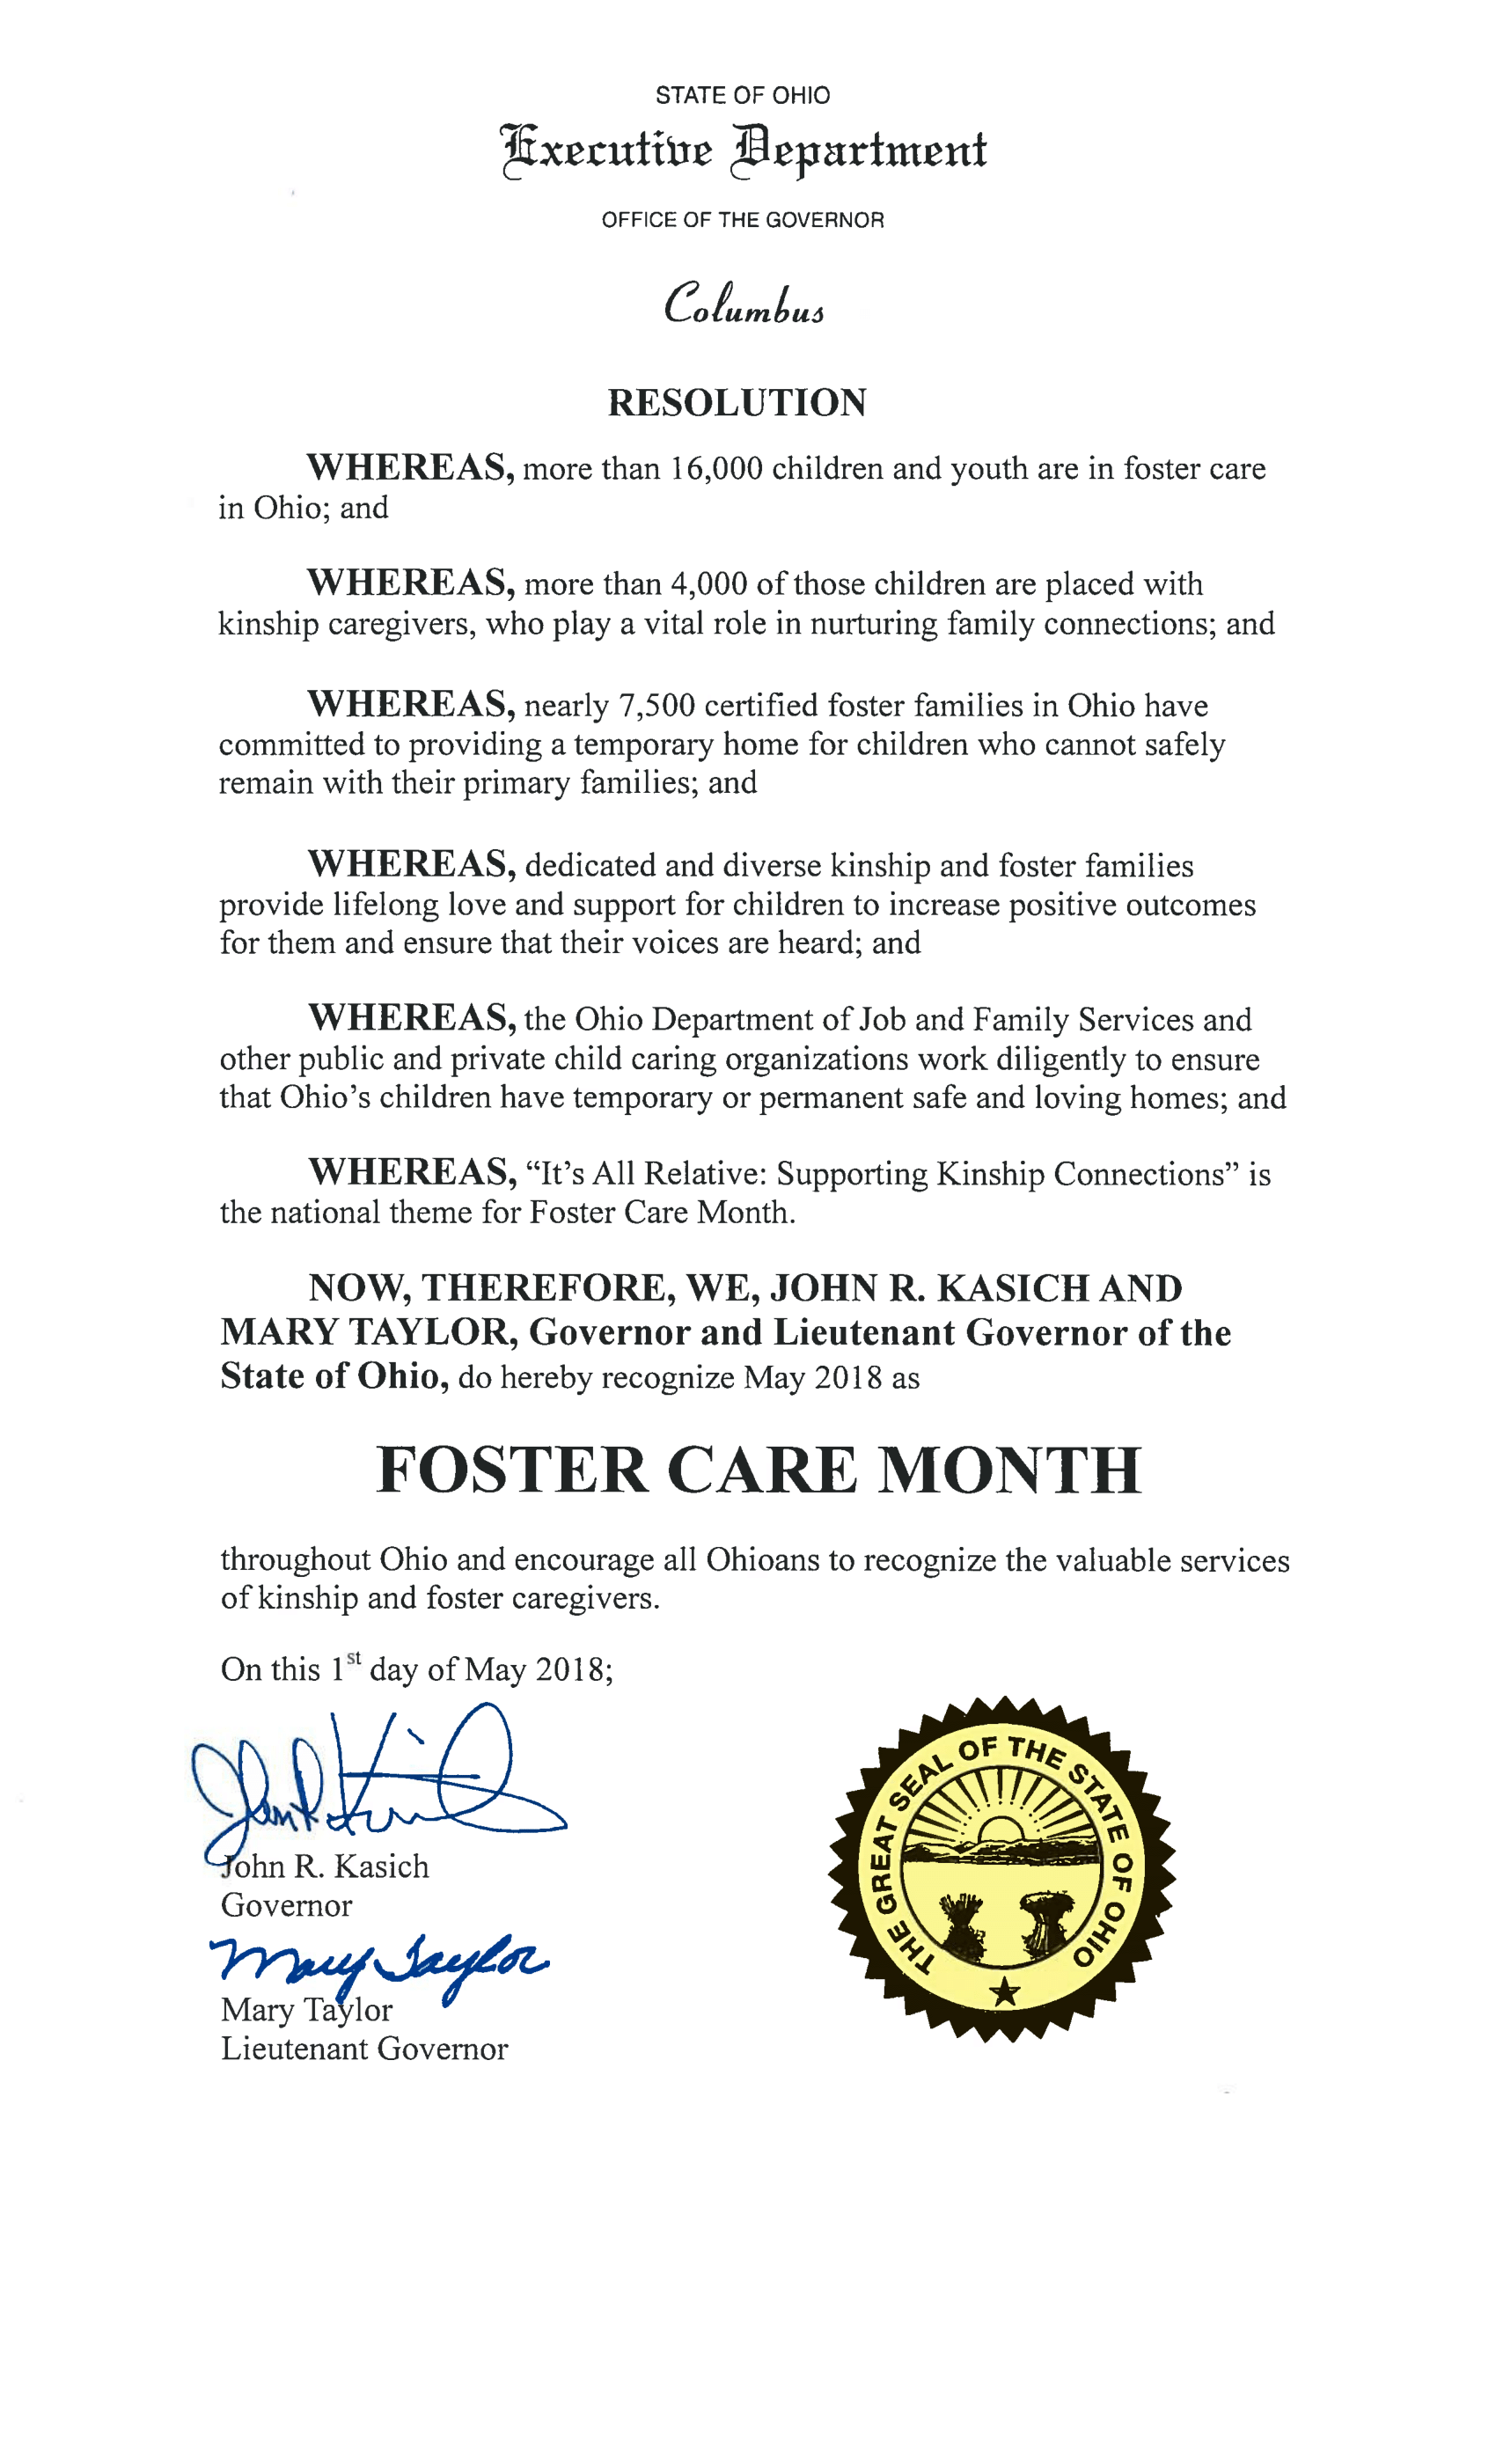 Ohio marks National Foster Care Month